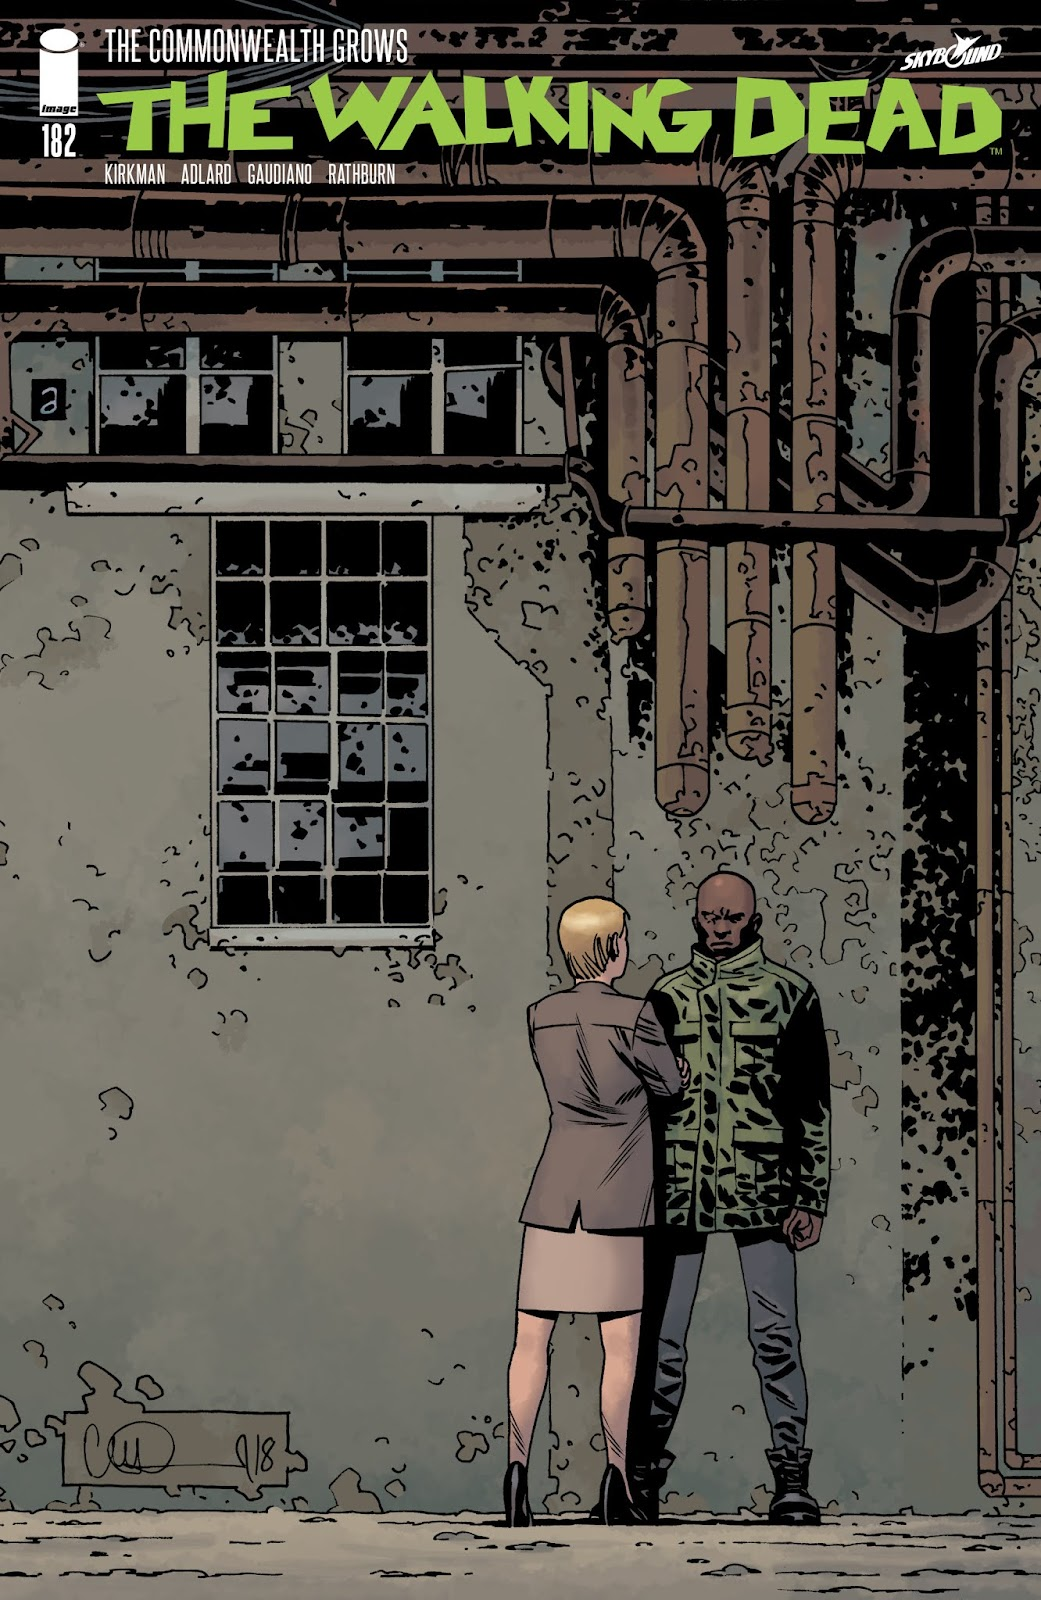 The Walking Dead 182 Page 1